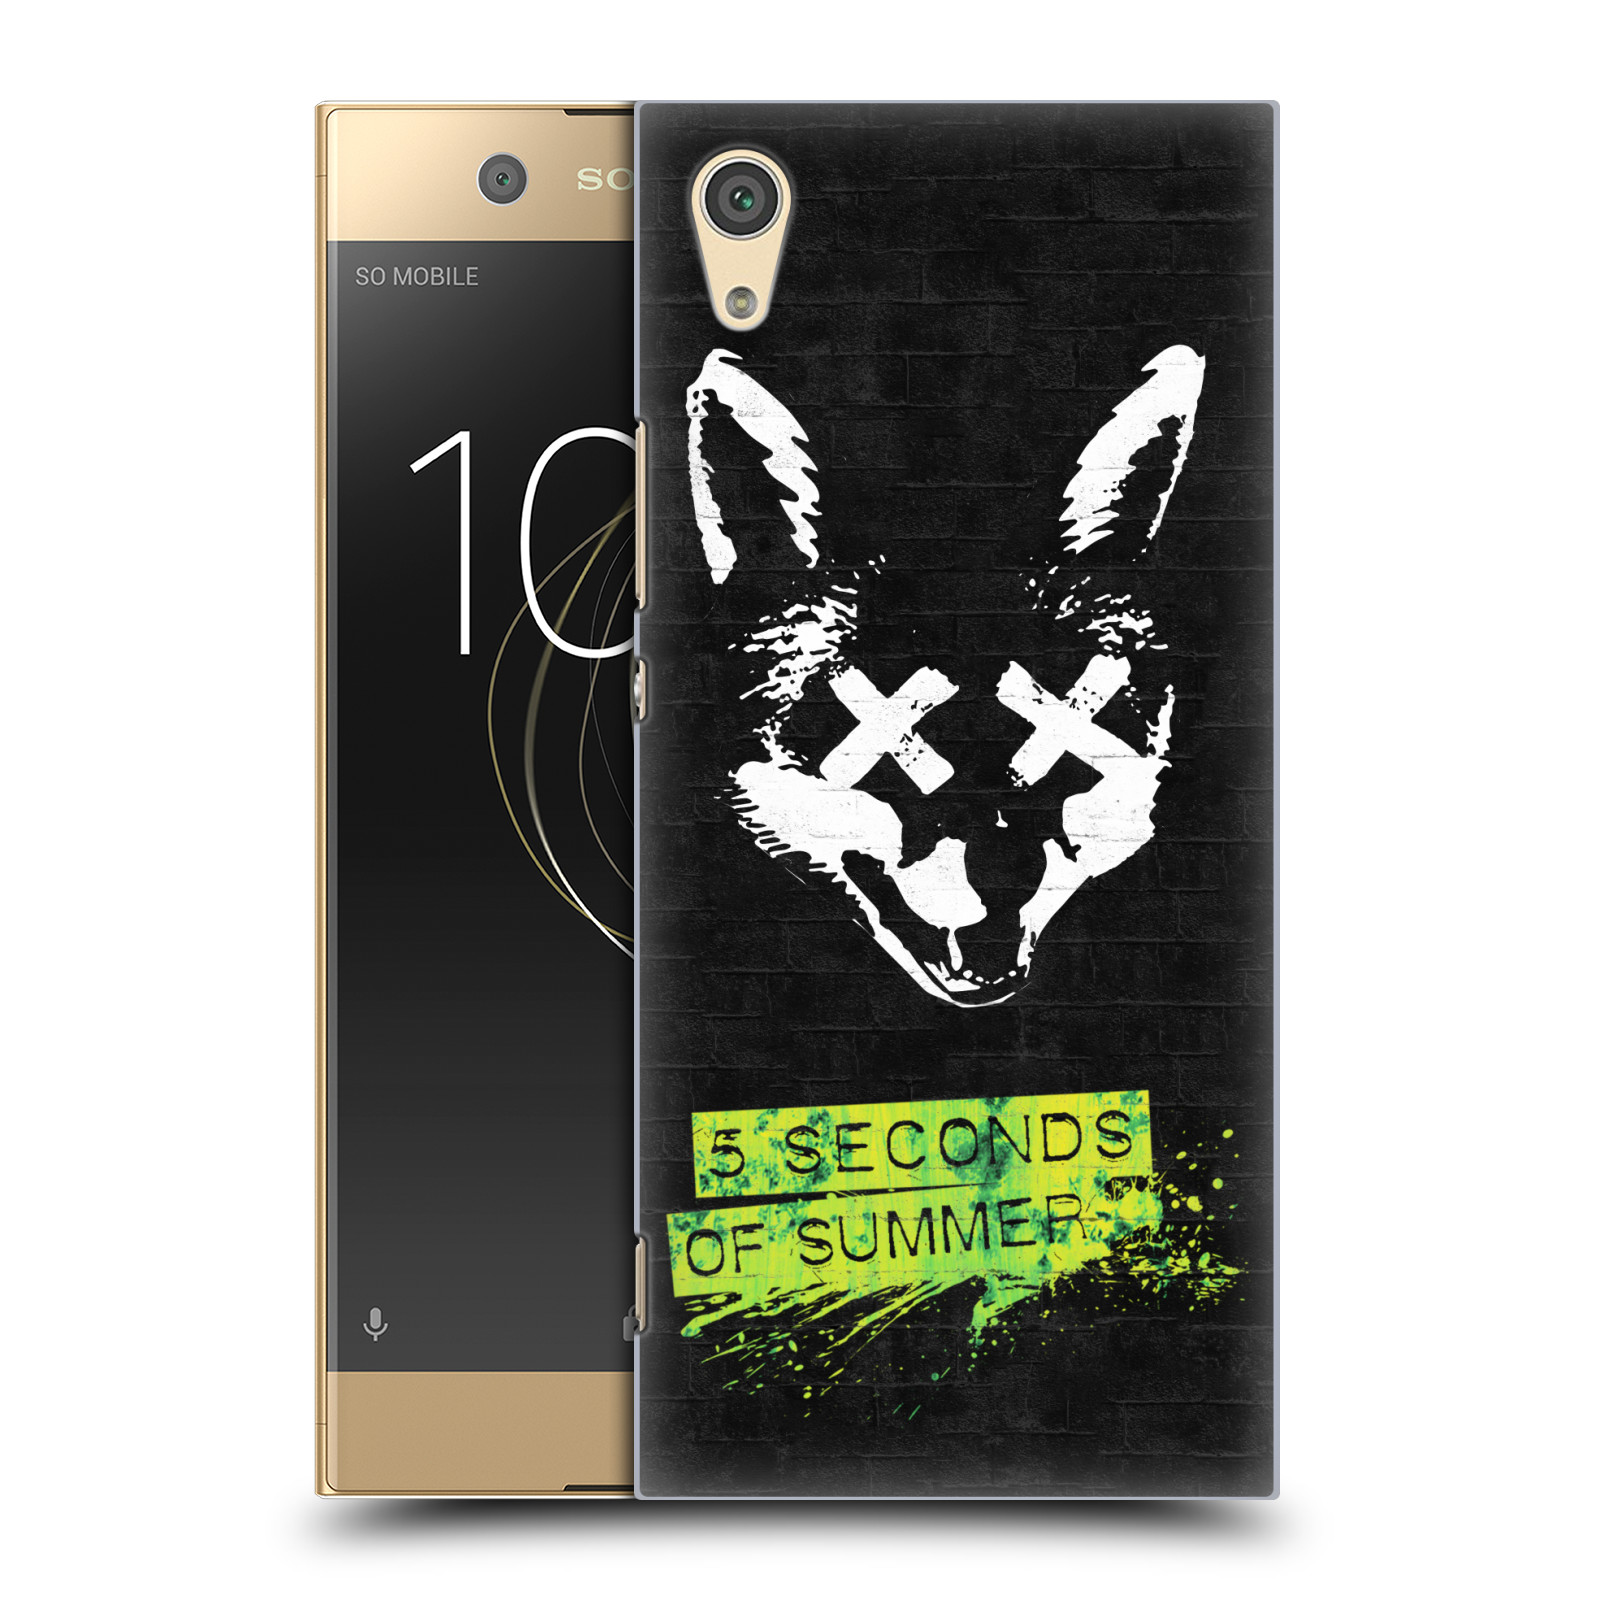 Plastové pouzdro na mobil Sony Xperia XA1 - Head Case - 5 Seconds of Summer - Fox